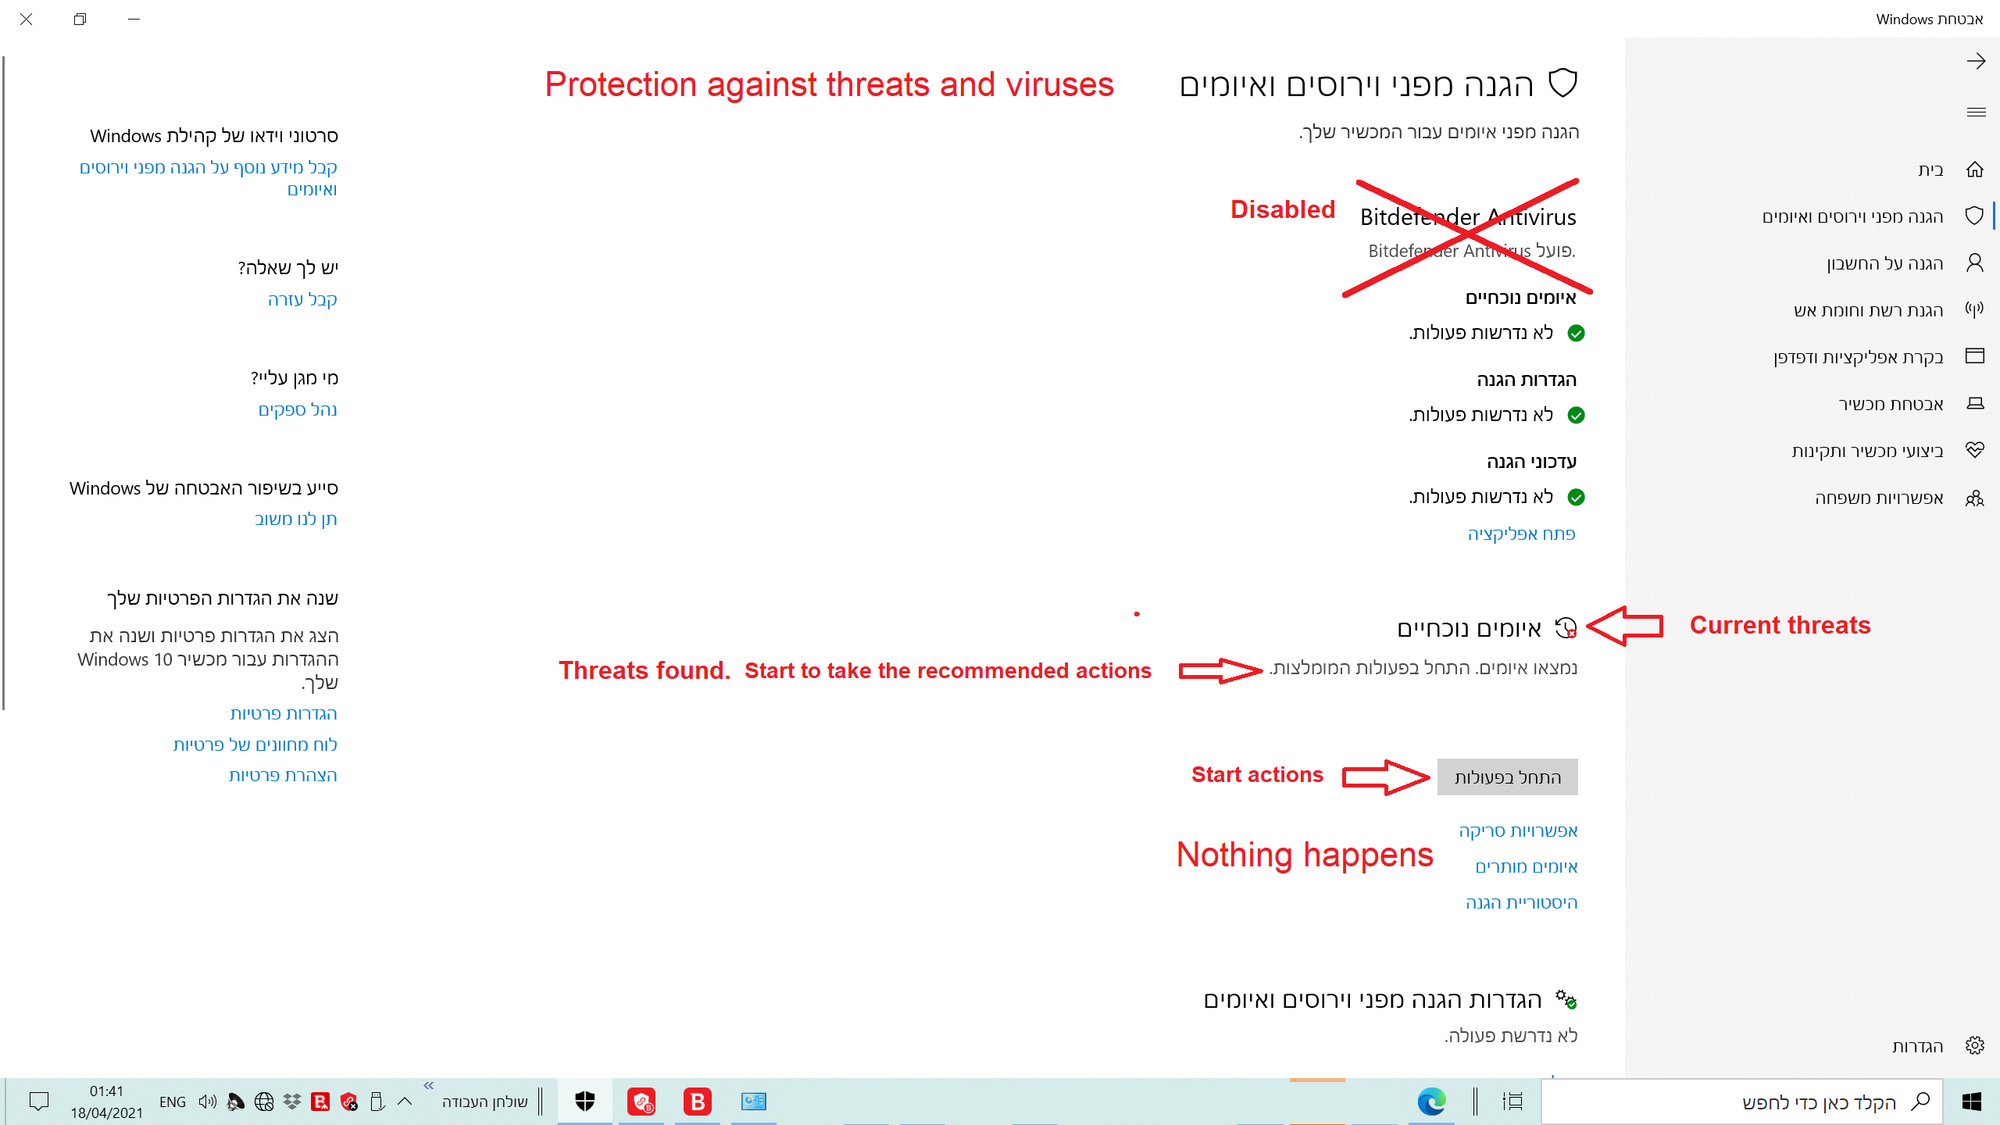 How could it be that Microsoft Defender Anti Virus found threats but is not capable of... da839ee2-3dcd-4aad-a4dc-4b6e6ac810a0?upload=true.png